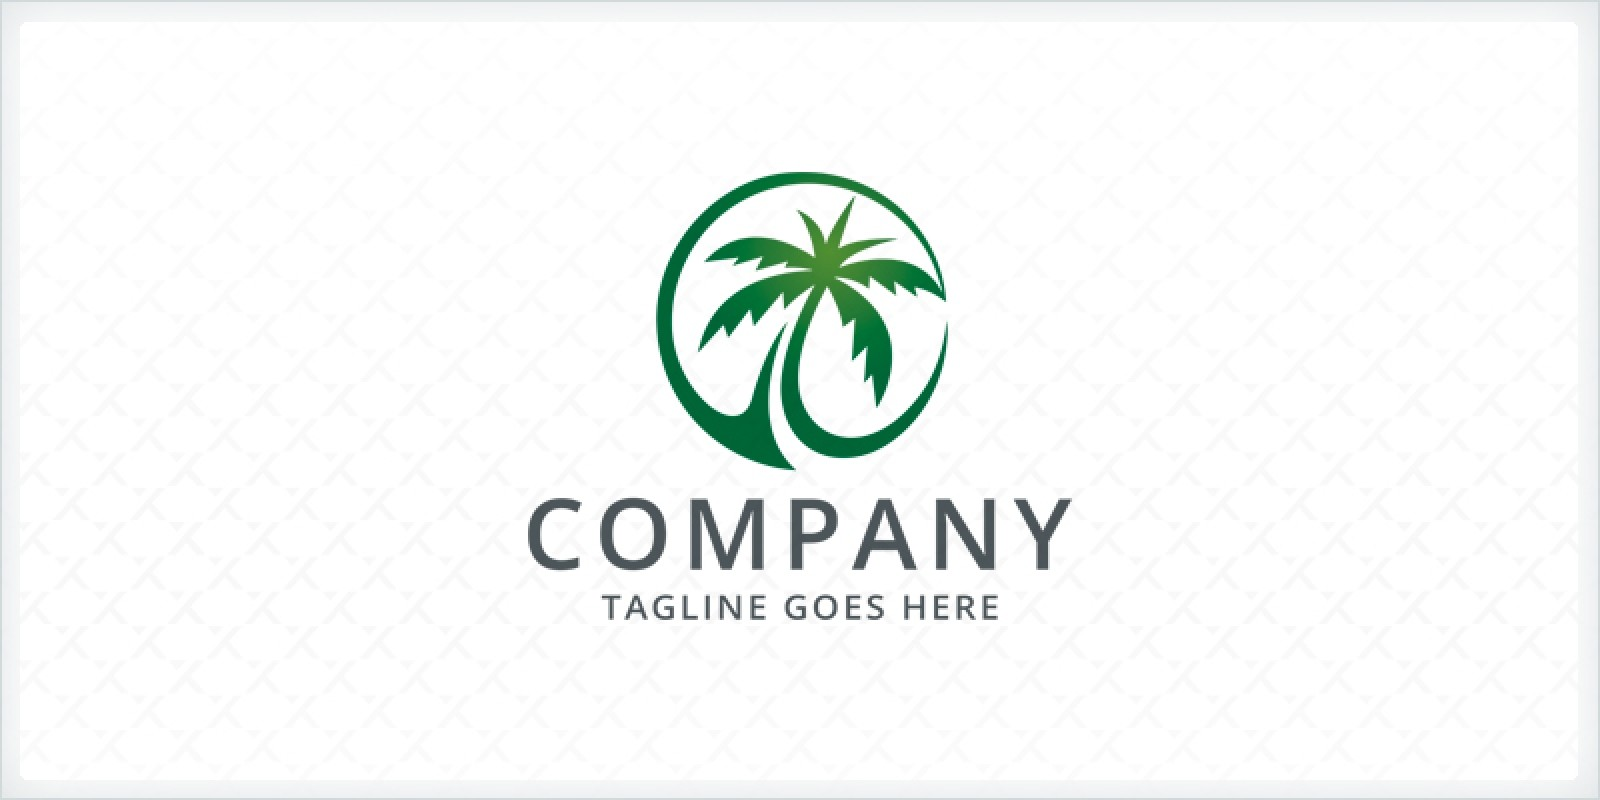 Green Palm Tree Logo Template By Zixlo Codester 819 x 1080 jpeg 112 кб. https www codester com items 3909 green palm tree logo template